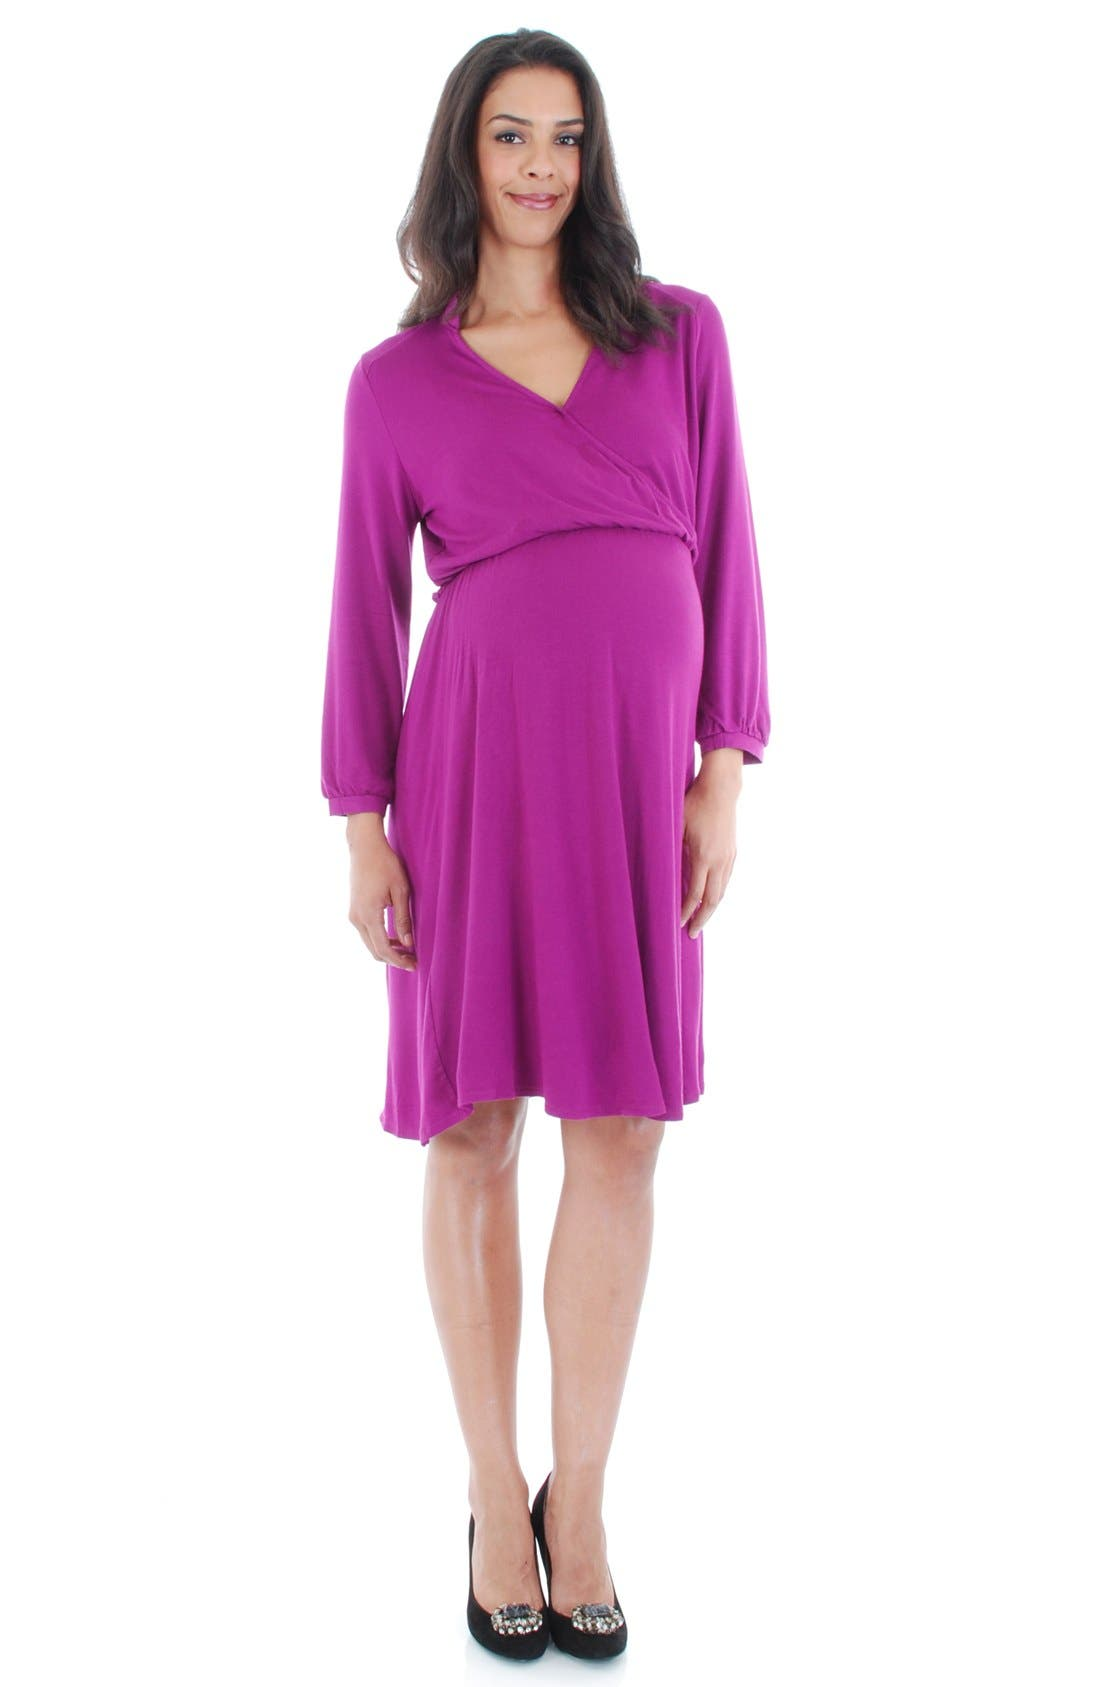 Everly Grey 'Sicily' Maternity/Nursing Dress,                         Main,                         color, 661